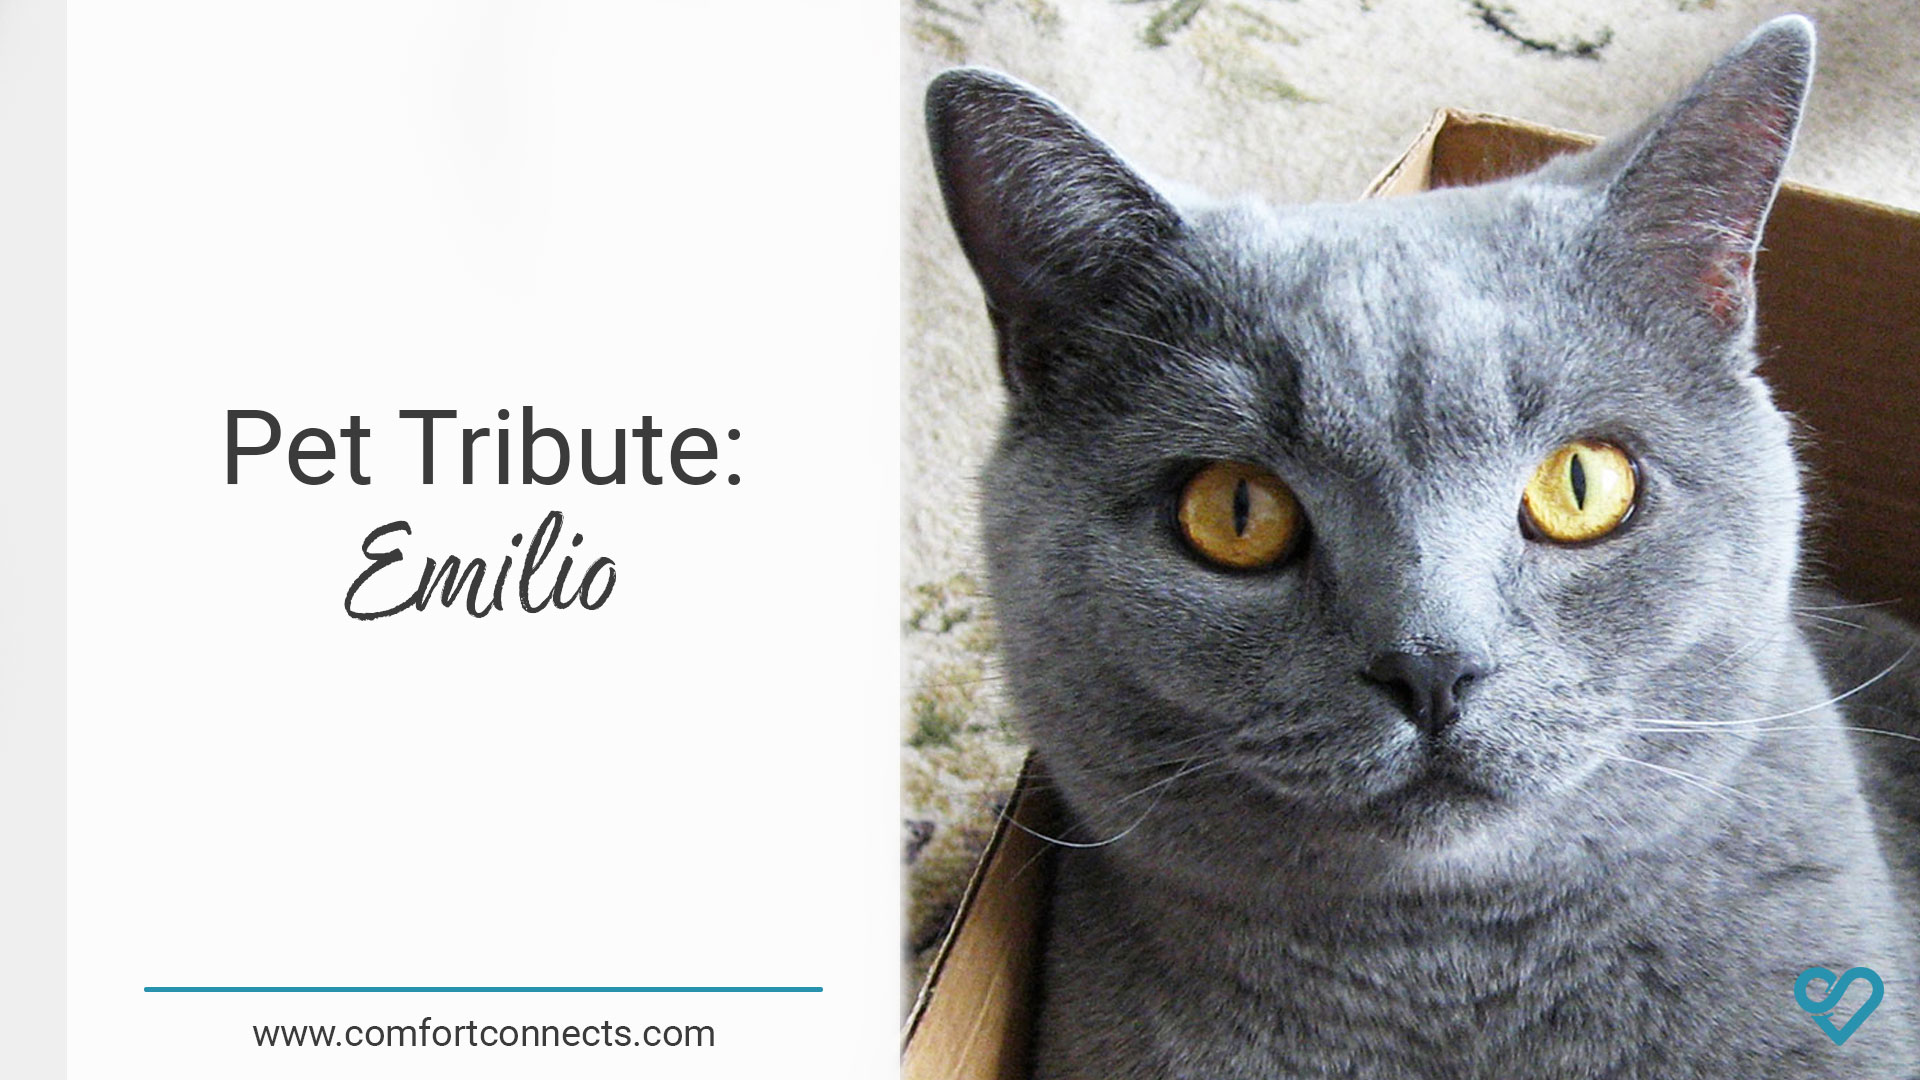 Pet Tribute: Emilio